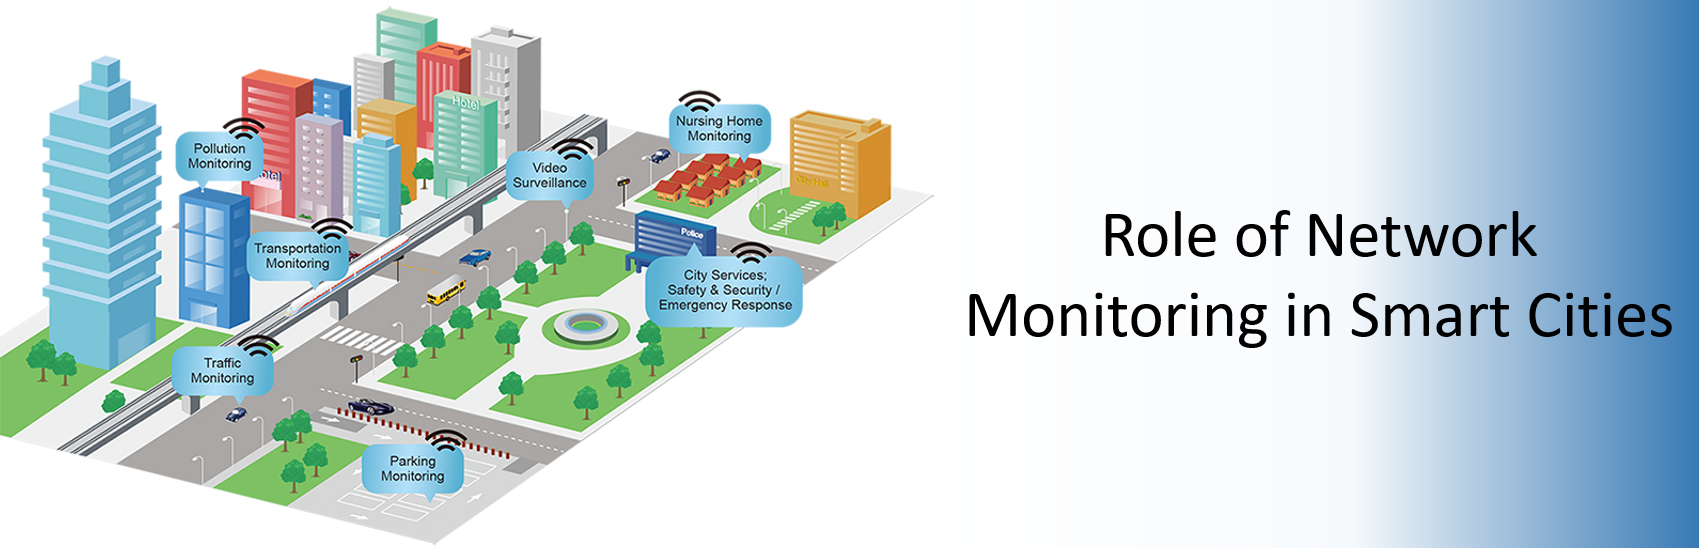 Role of Network Monitoring in Smart Cities Development